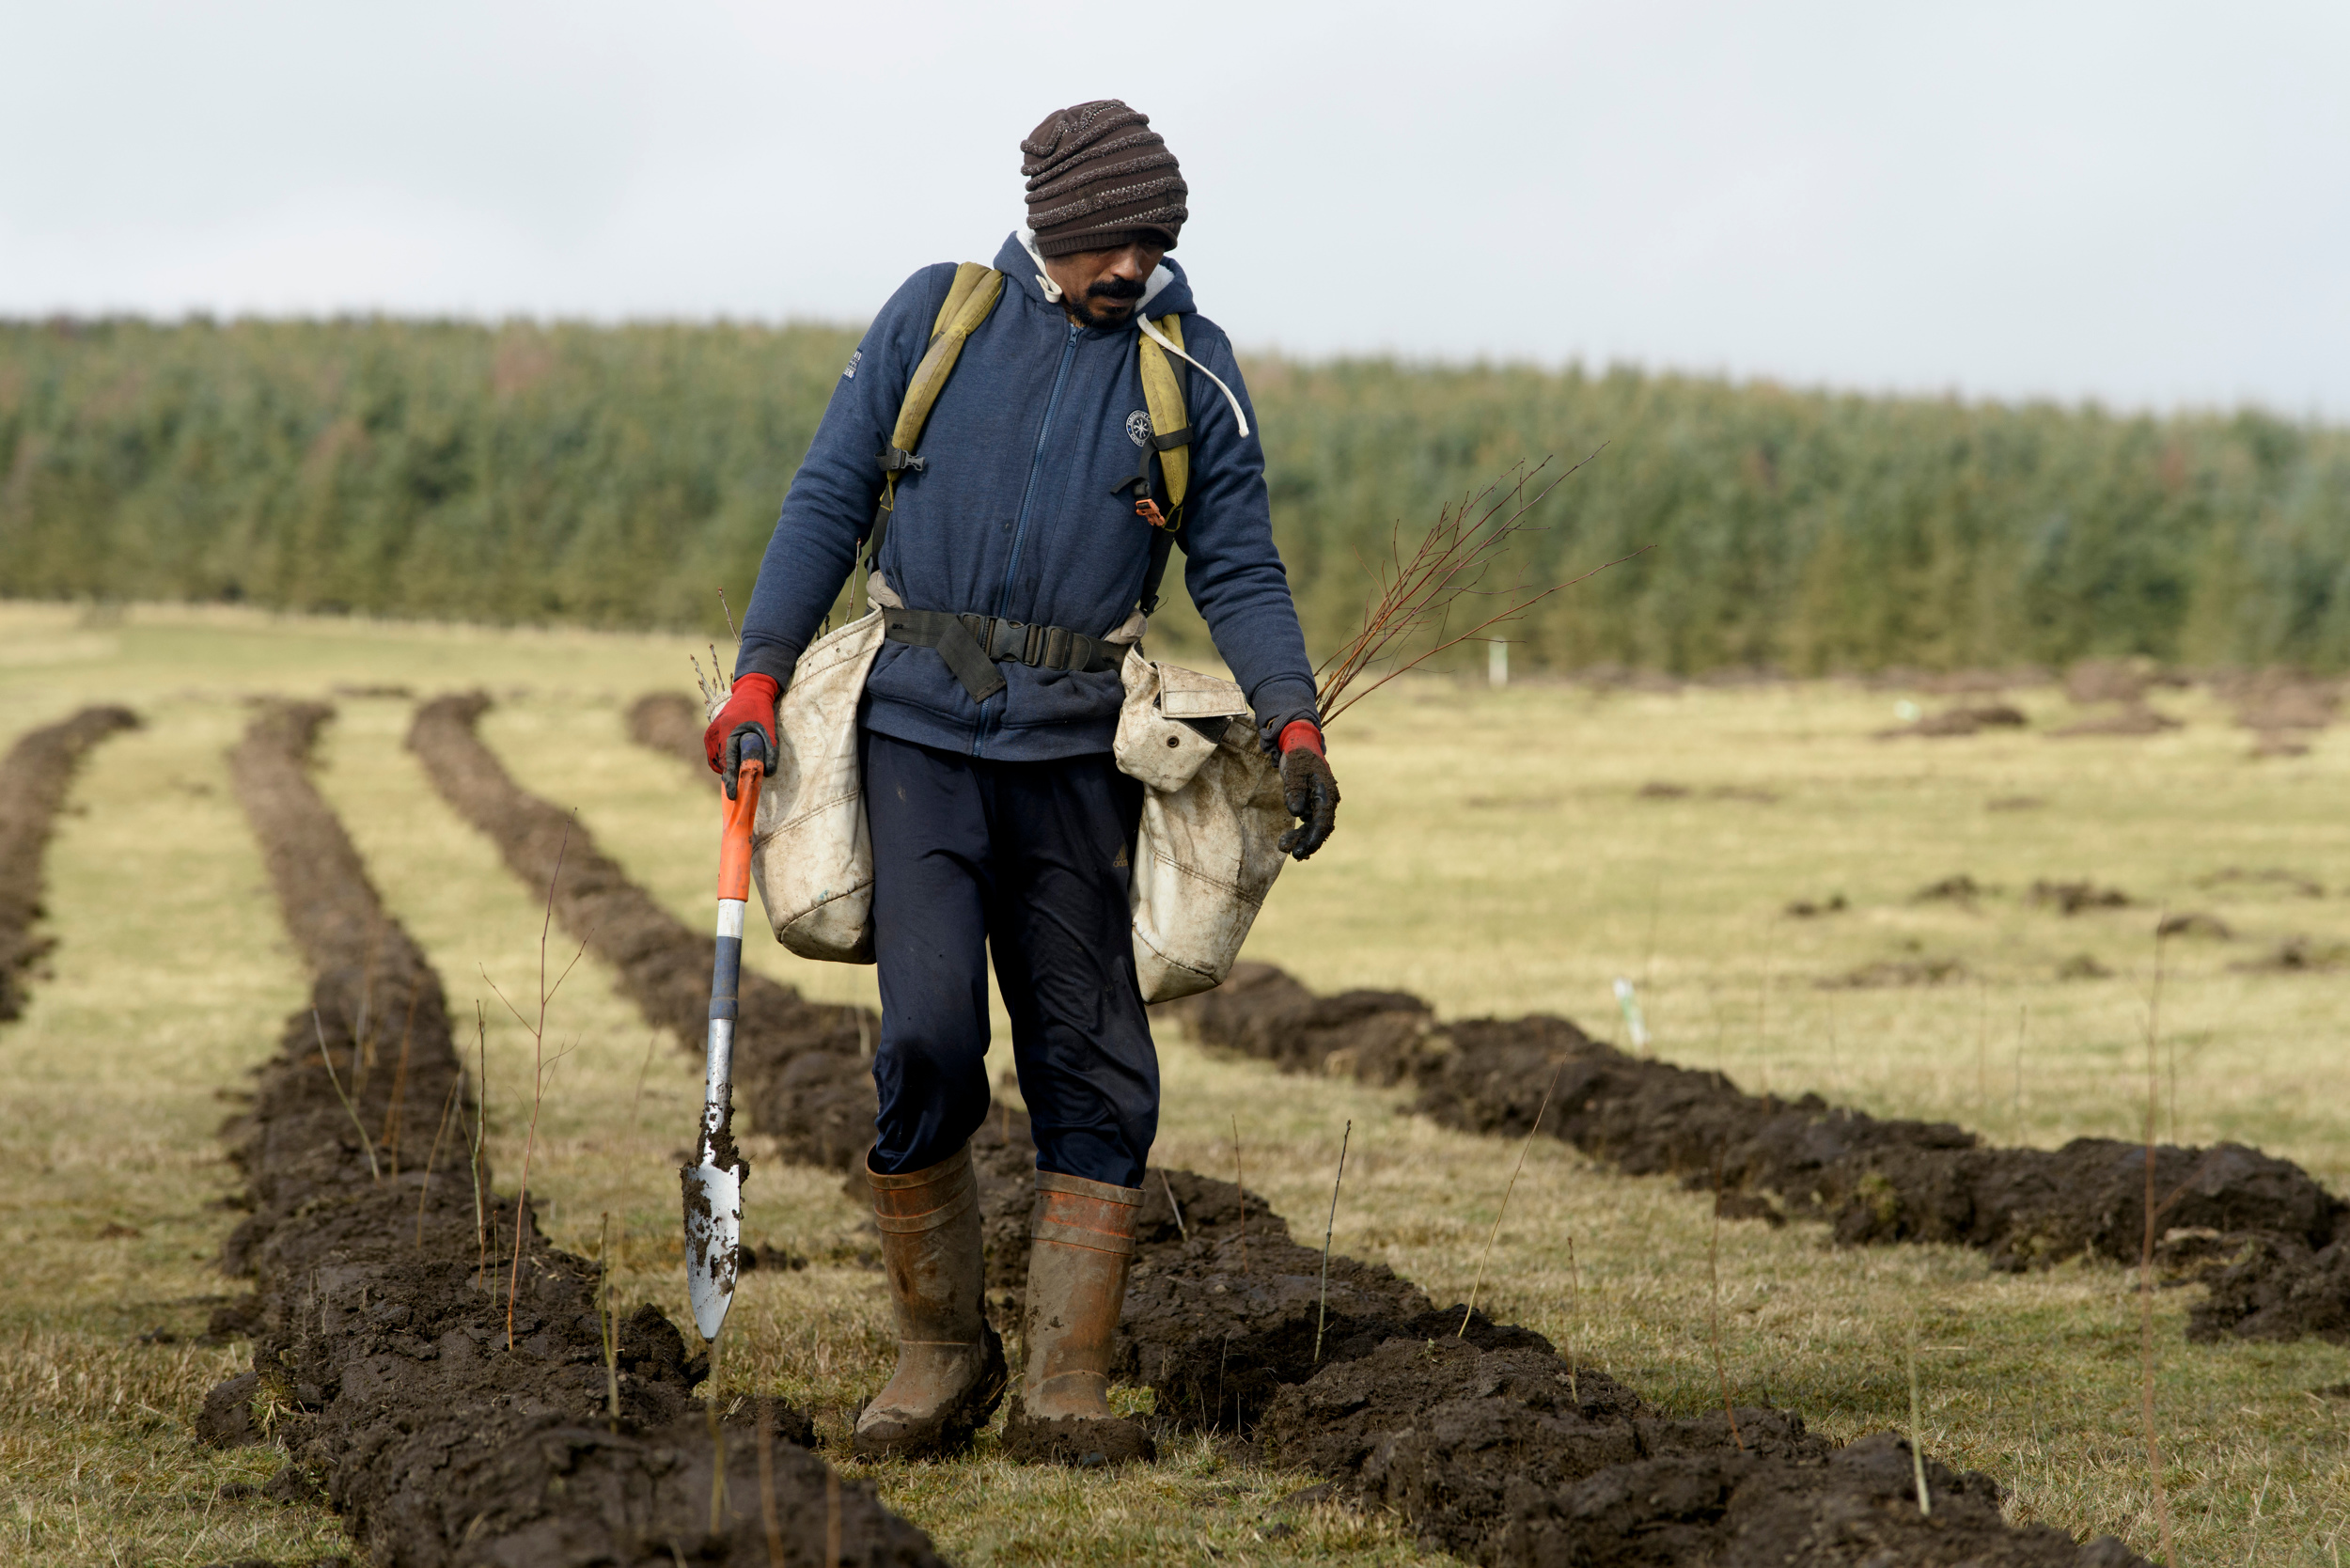 Scottish Forestry hopes the £2m grant scheme will lead to an increase in tree planting in woodlands across the country.